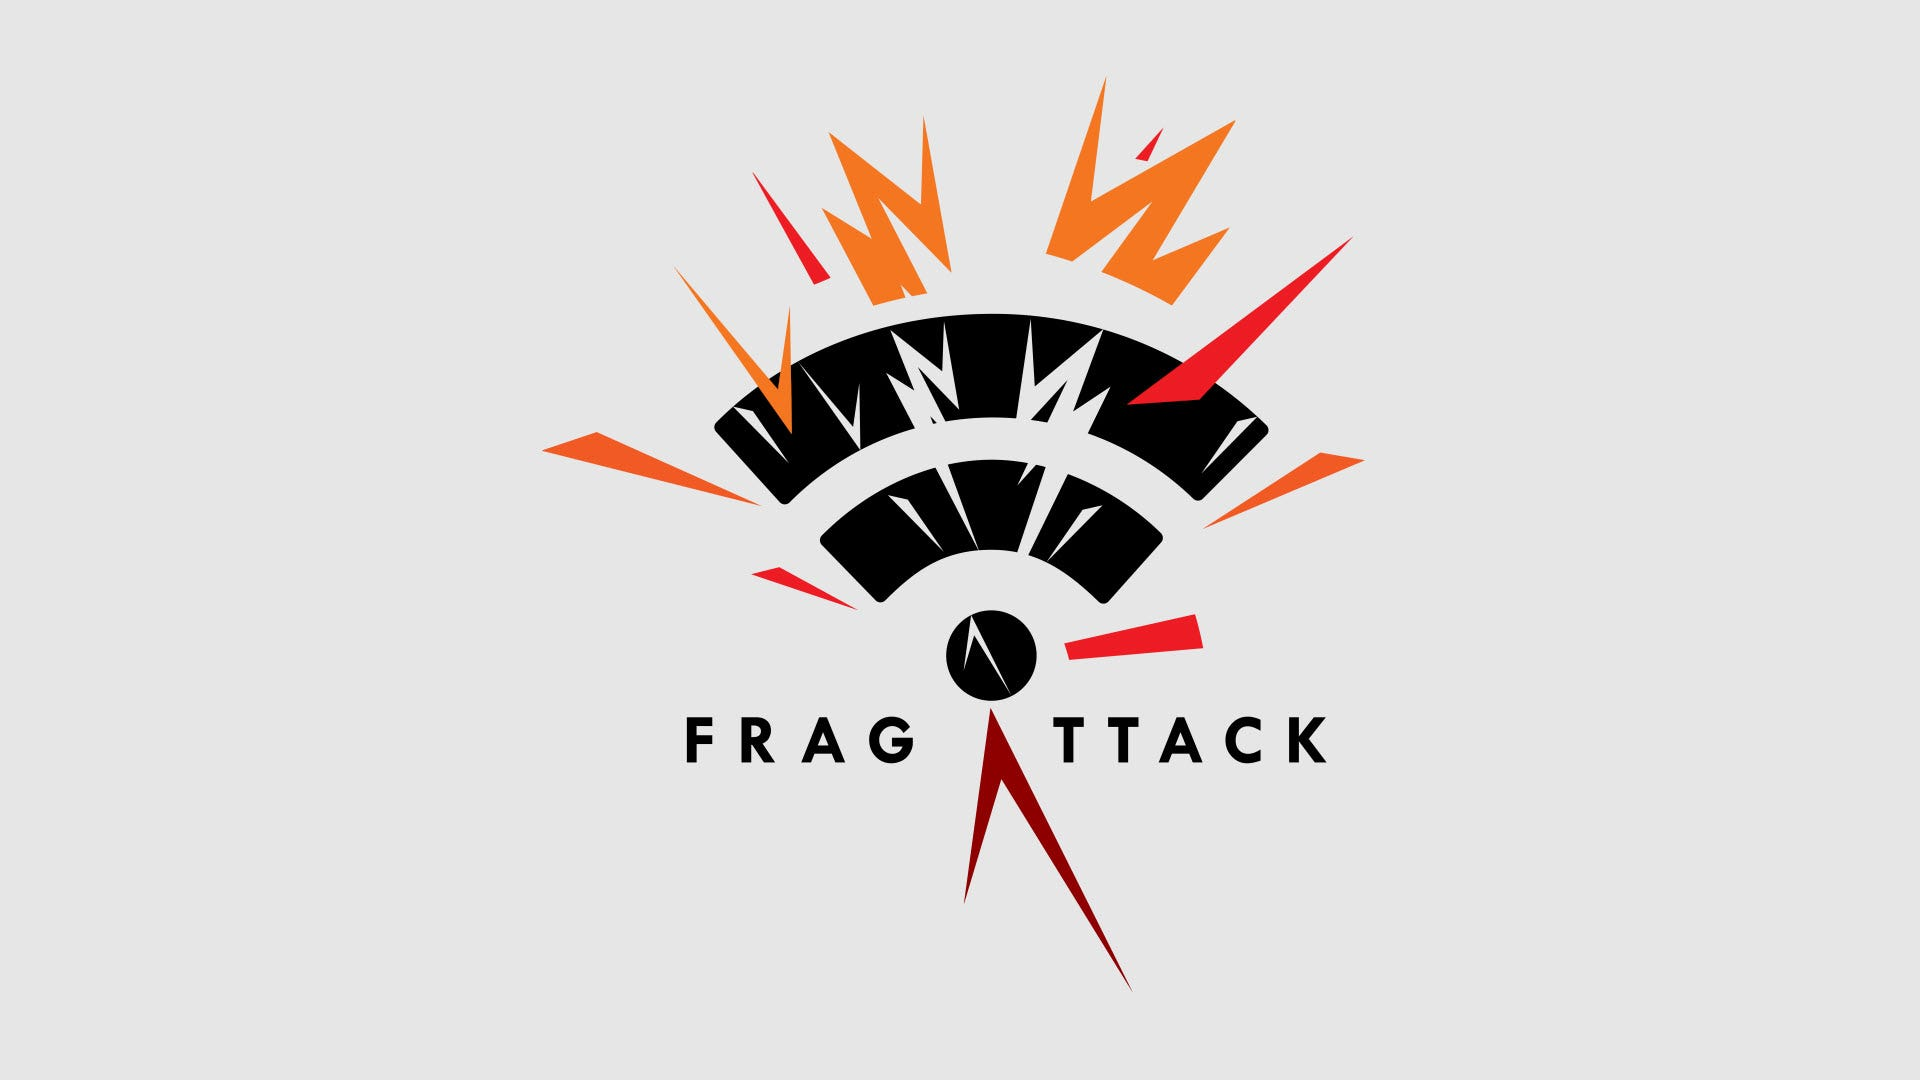 Every Wi-Fi Device Back to 1997 Likely Vulnerable to FragAttacks thumbnail